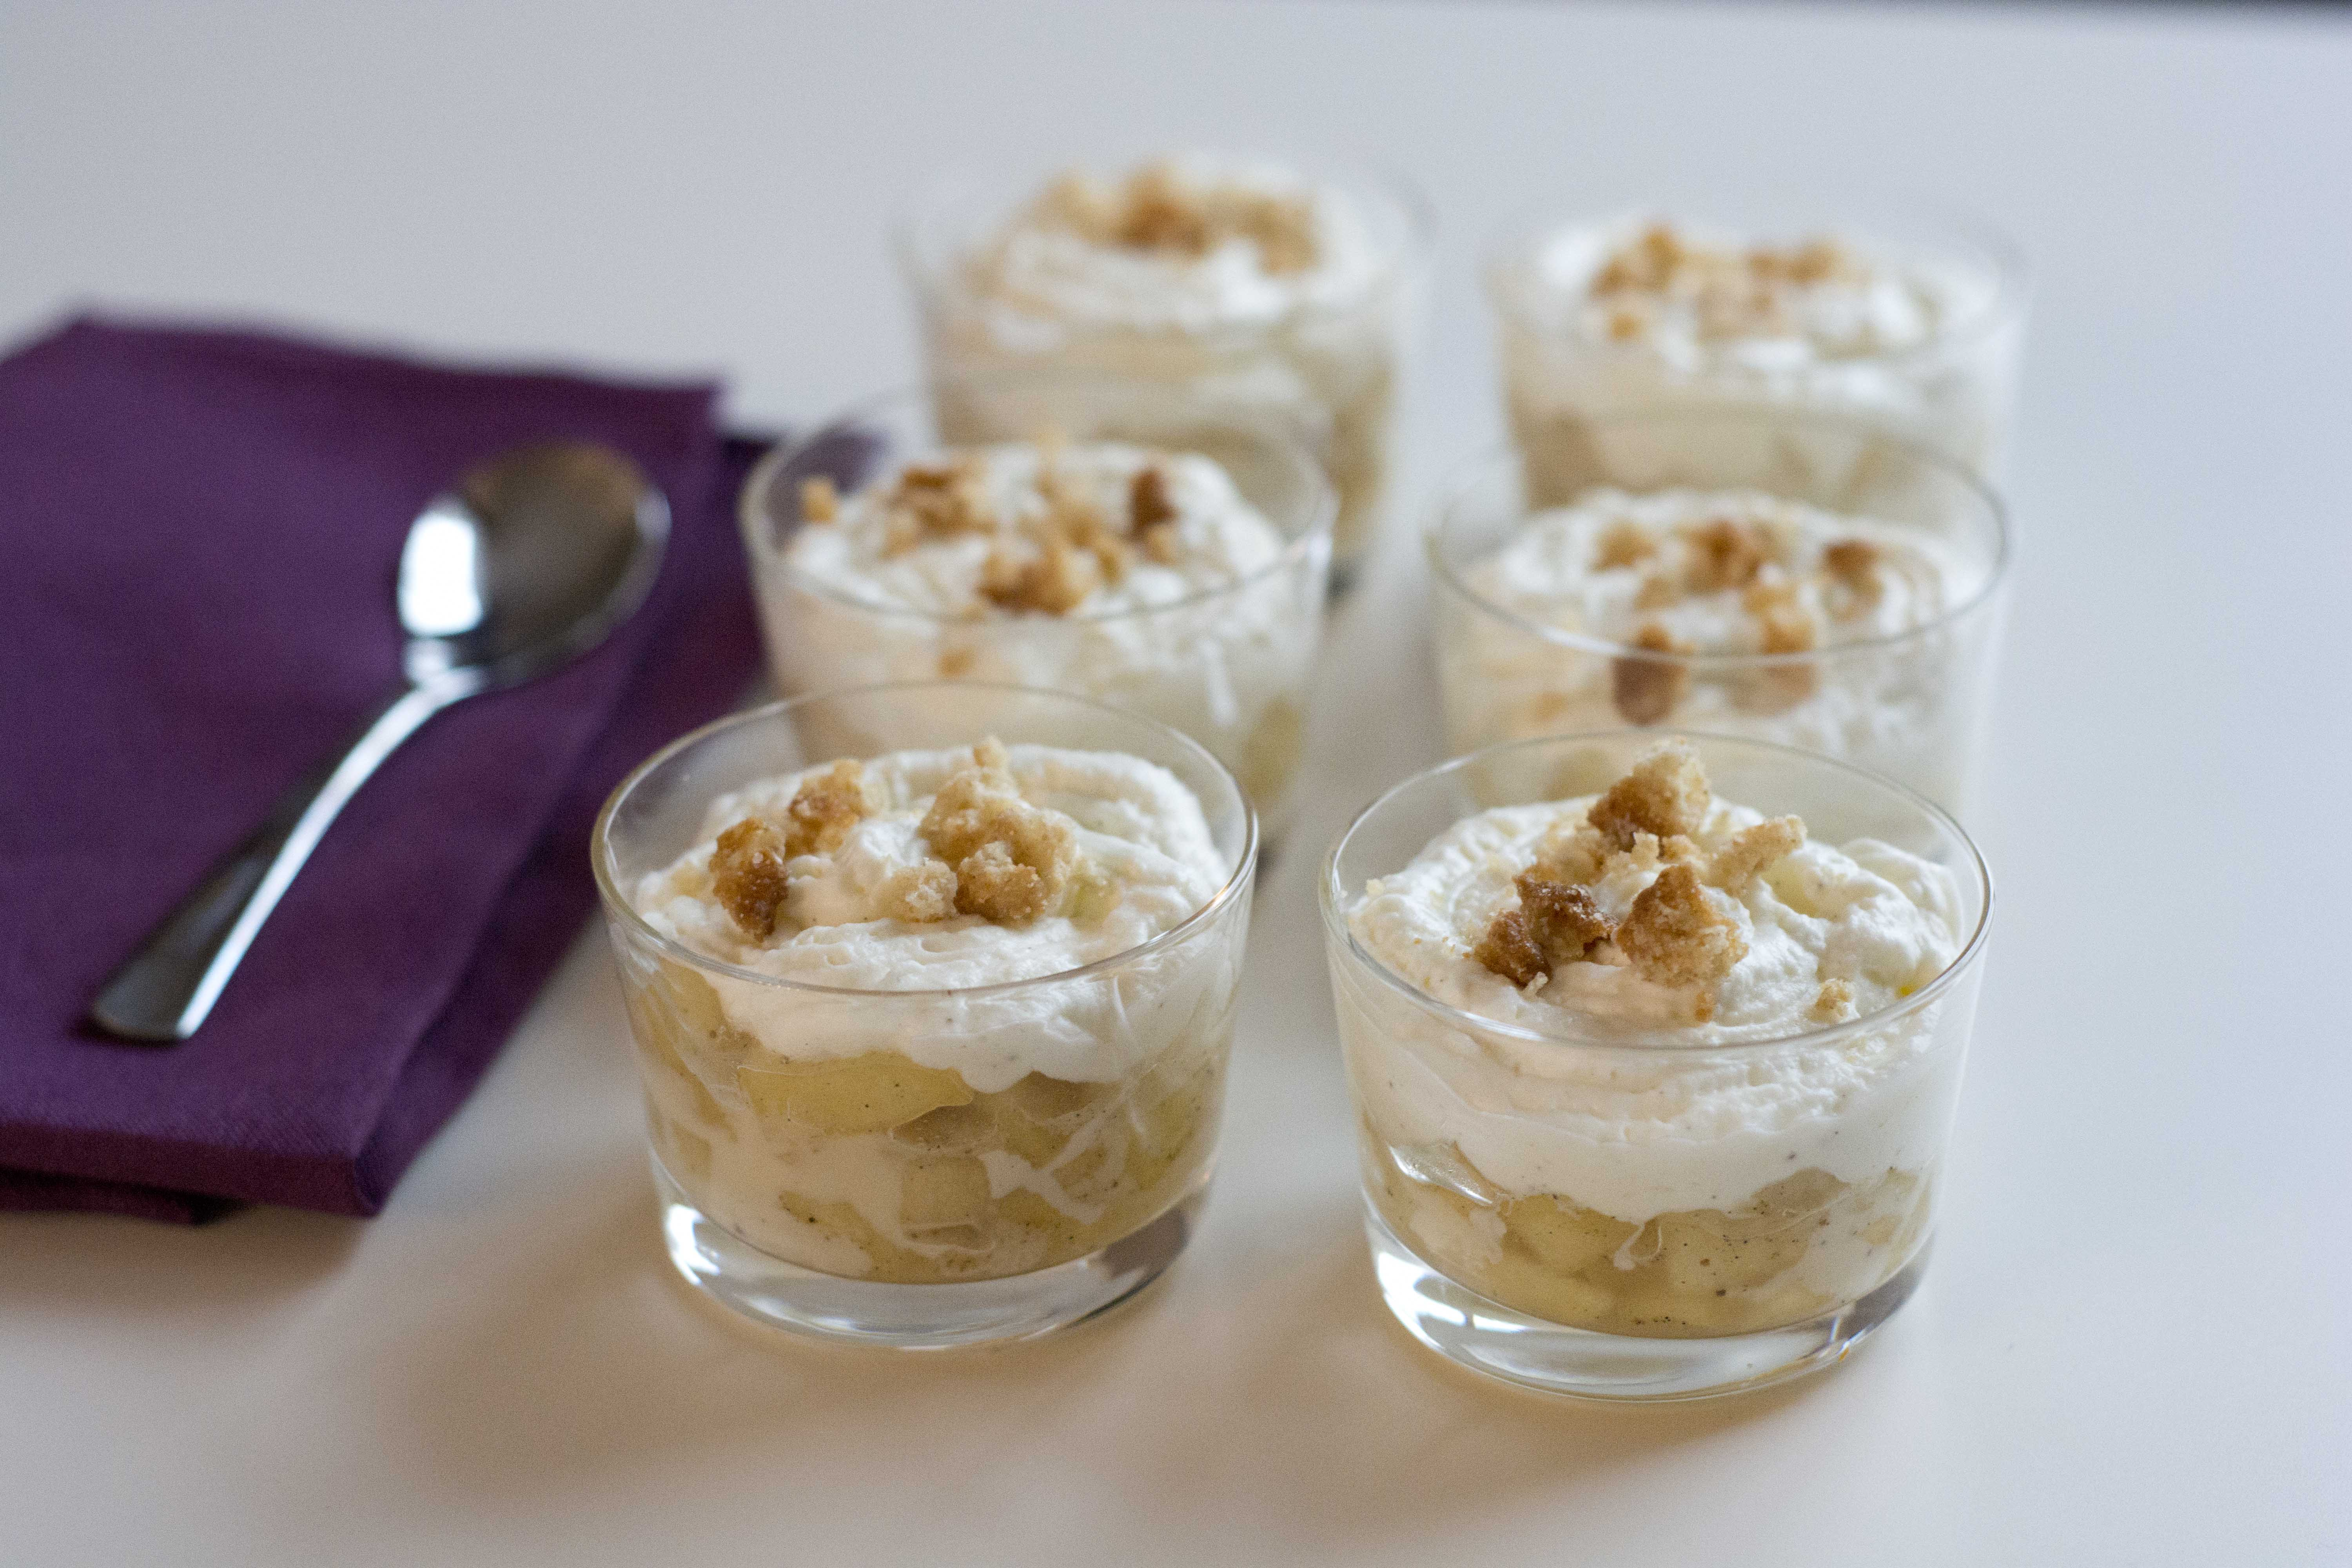 Verrine pomme vanille chantilly biscuit, ou gourmandise ...